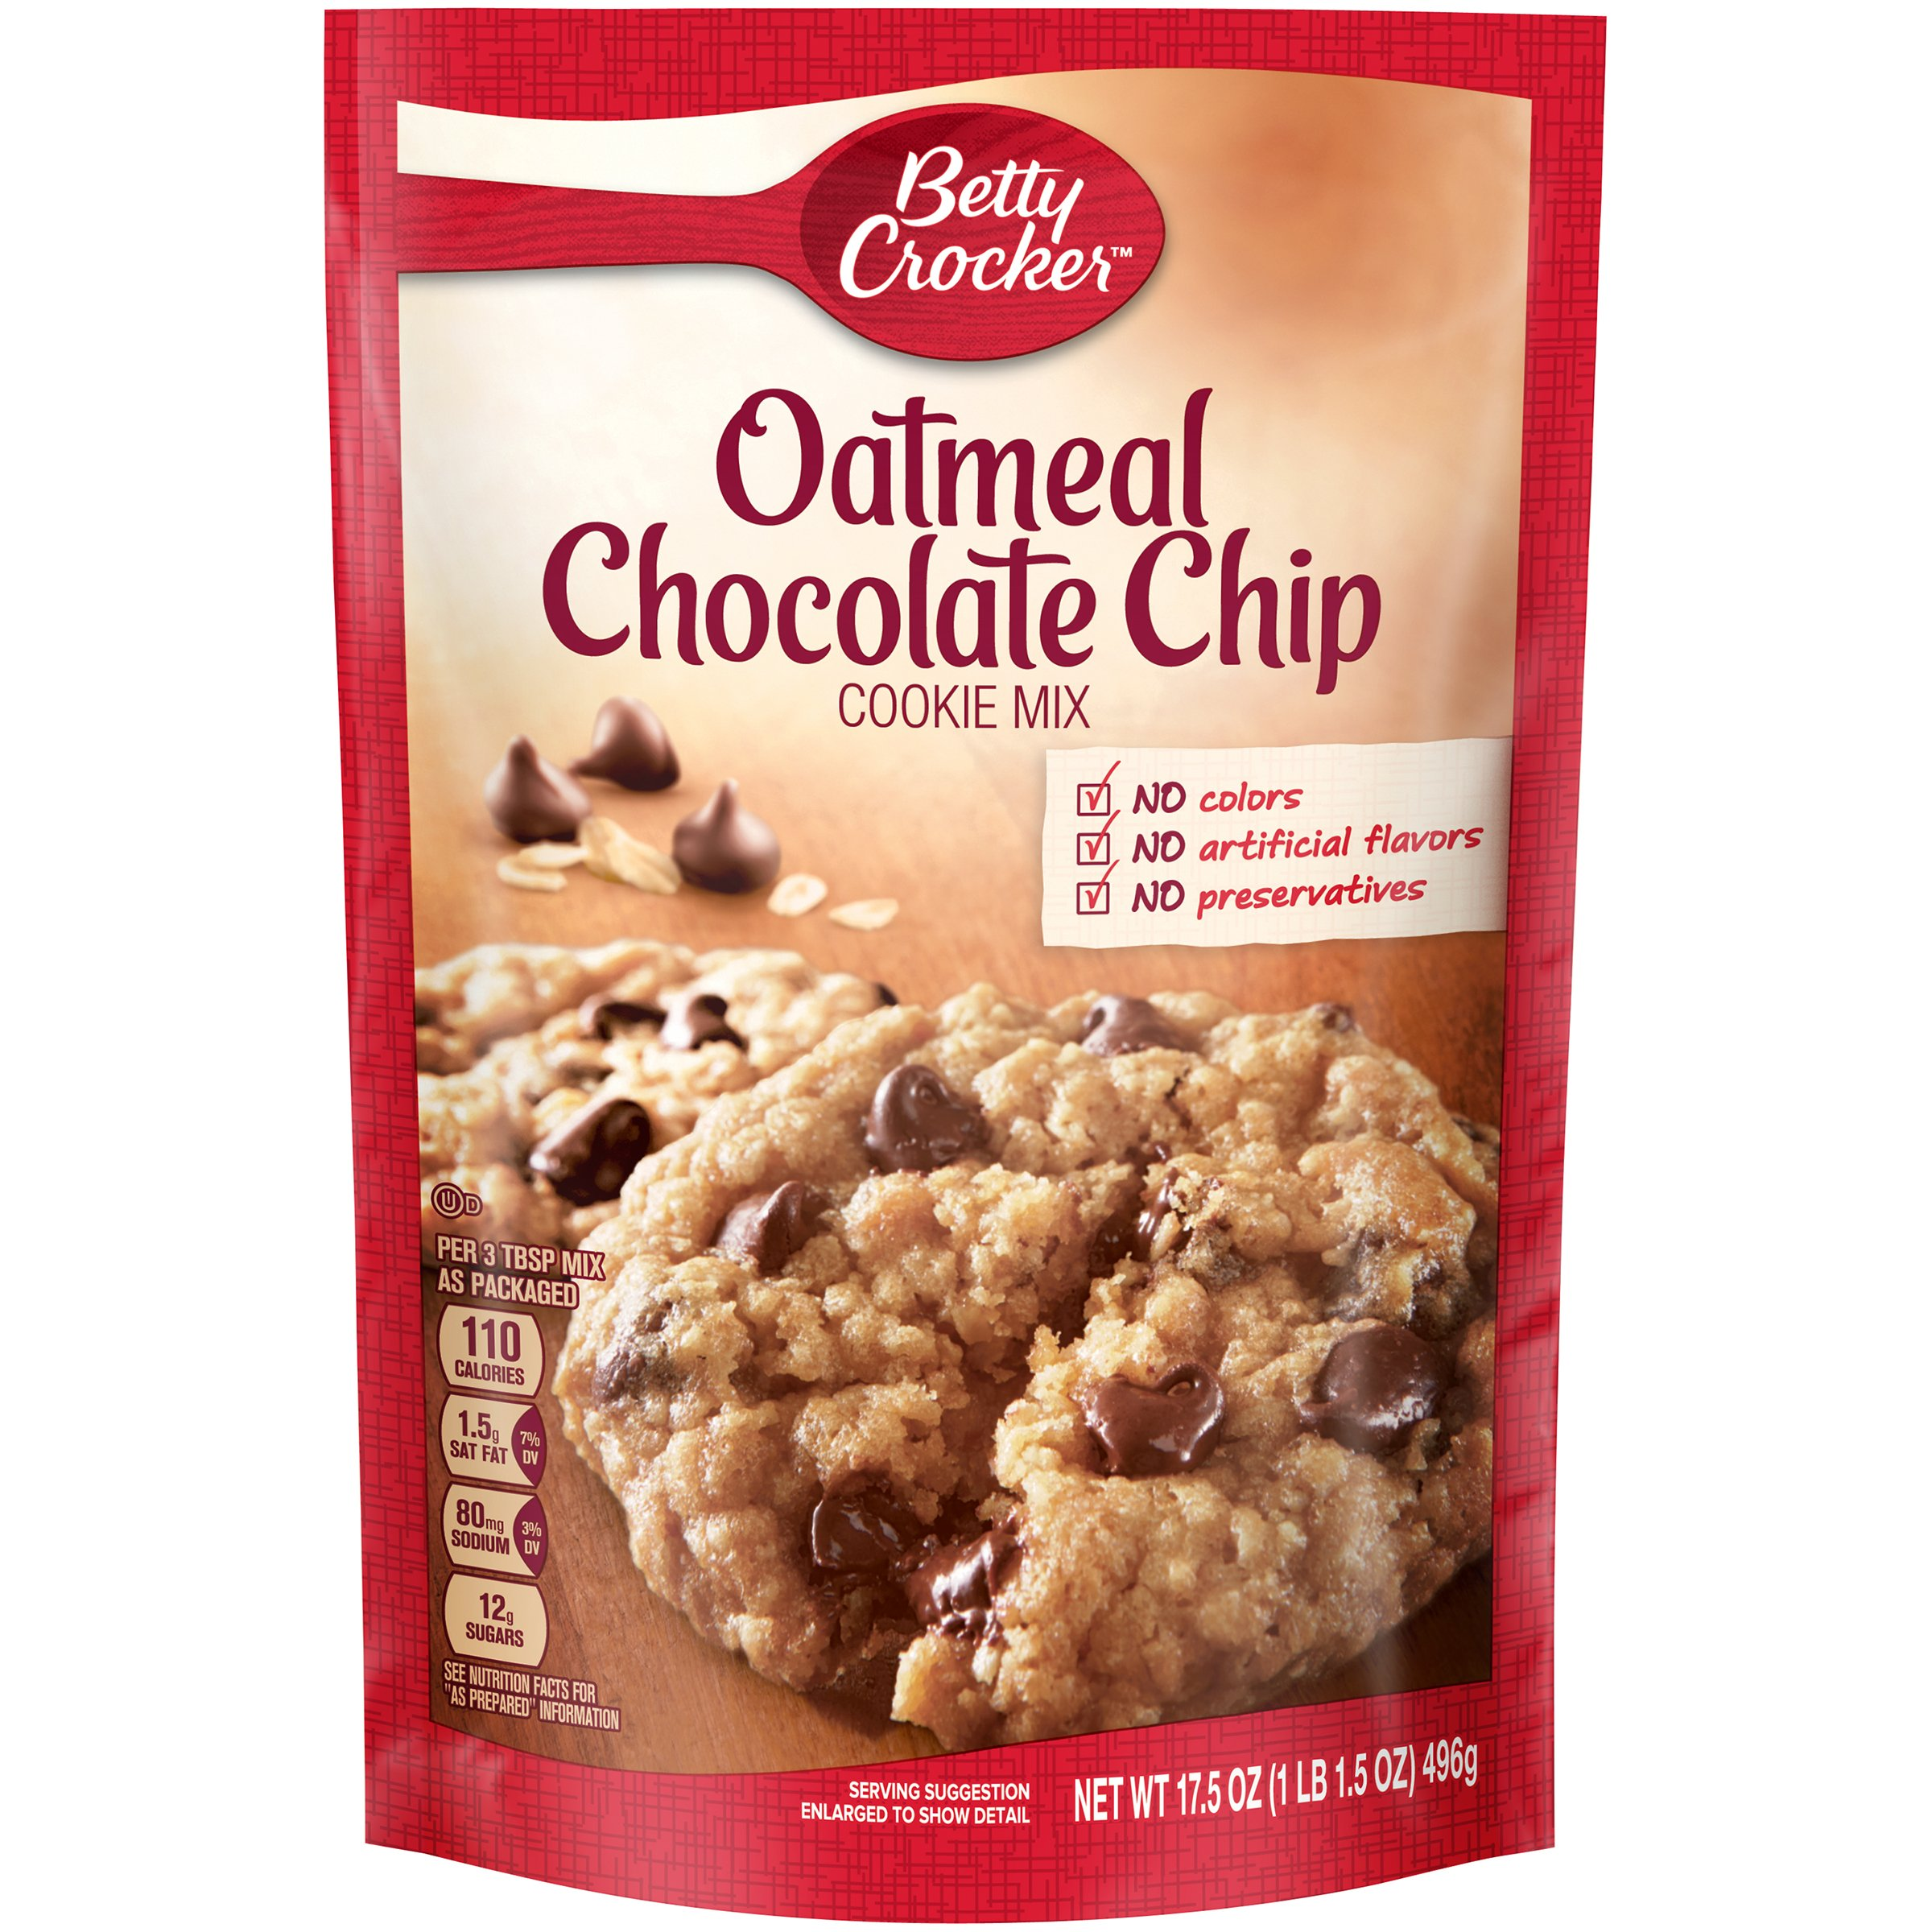 Betty Crocker Cookie Mix Oatmeal Chocolate Chip 17.5 oz Pouch (pack of 12)